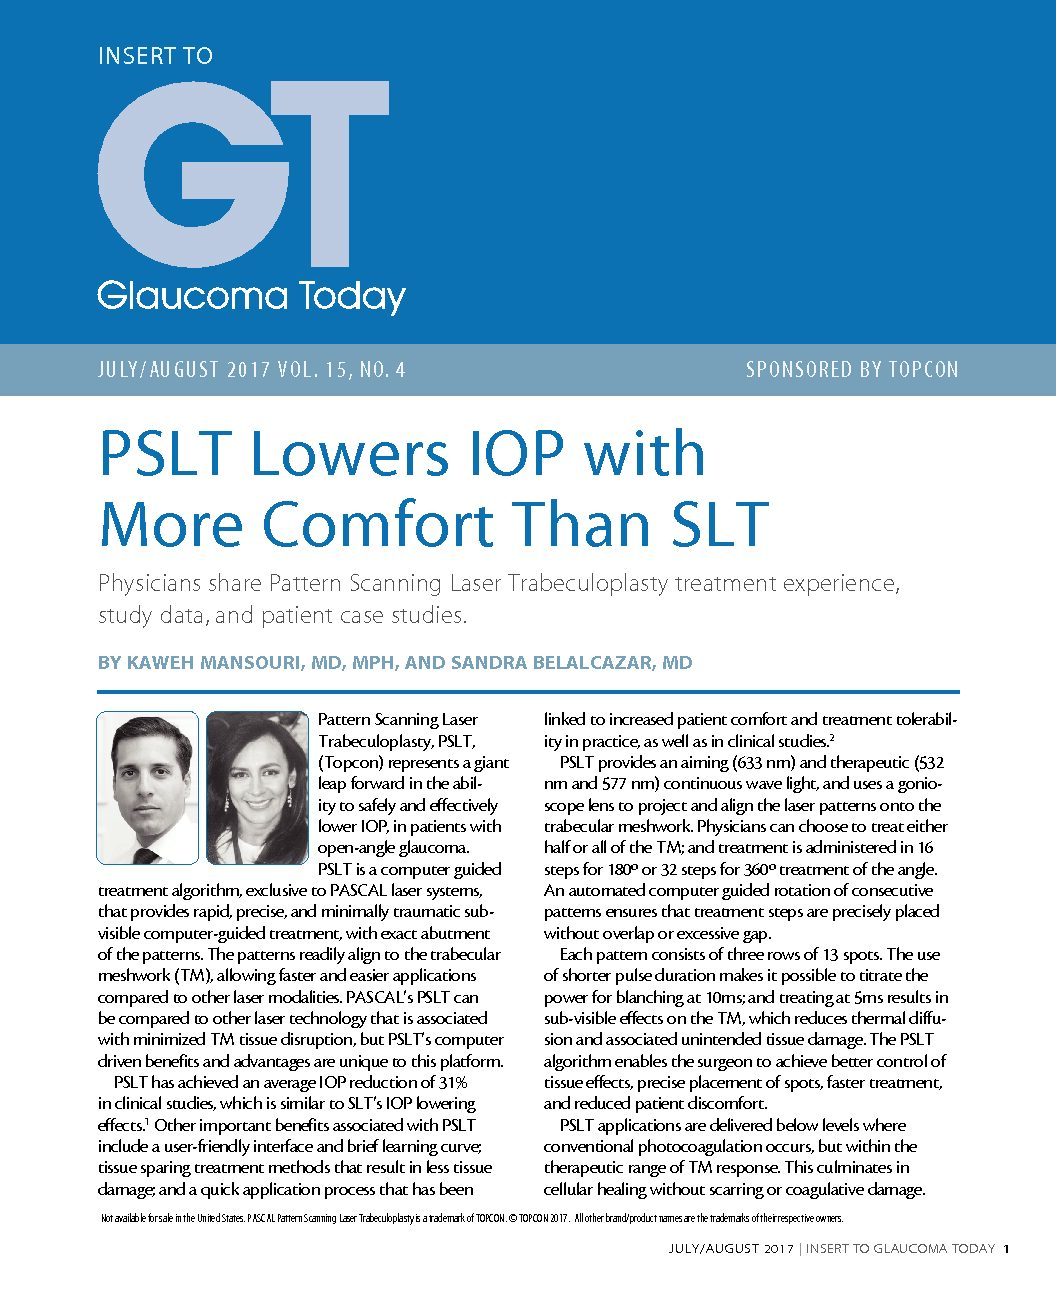 PSLT Lowers IOP with More Comfort Than SLT